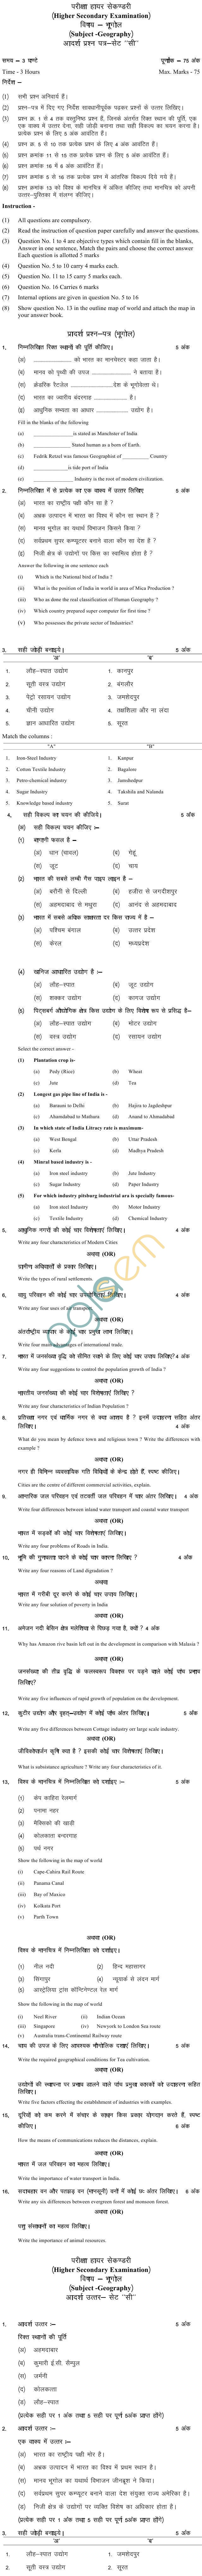 MP BoardClass XII Geography Model Questions & Answers -Set 4